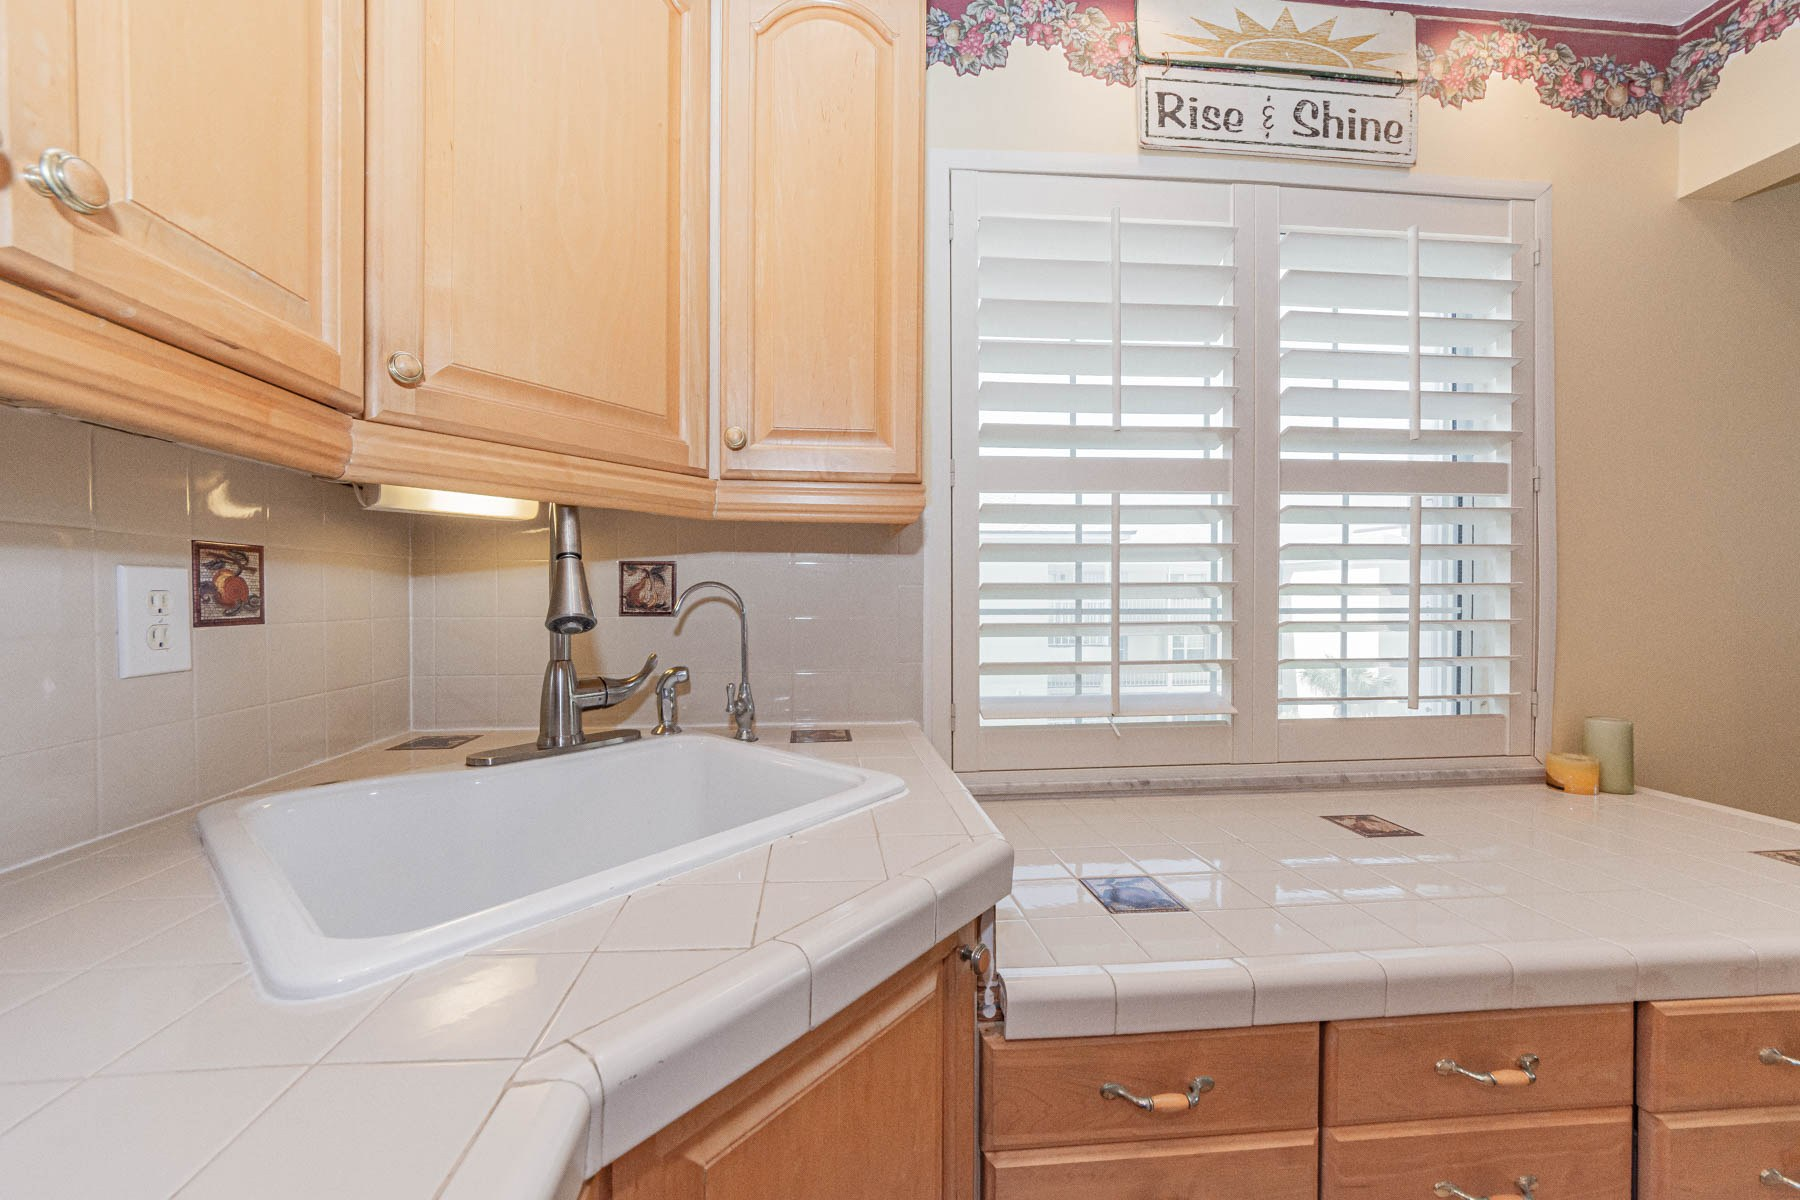 Additional photo for property listing at 1441 Ocean Drive, #303, Vero Beach, FL 1441 Ocean Drive, 303 Vero Beach, Florida 32963 United States